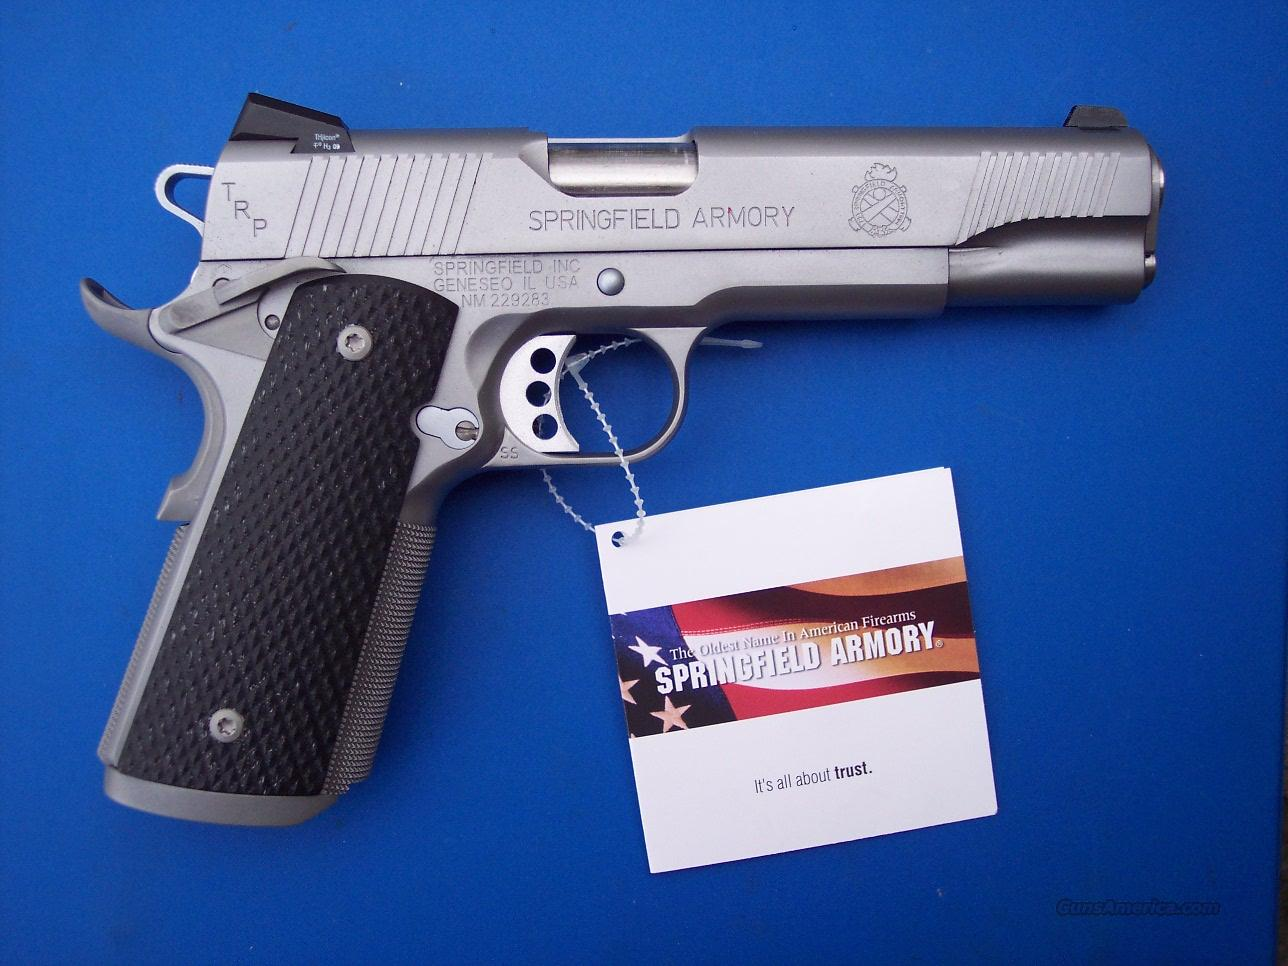 Springfield TRP Stainless 45 *NEW*  Guns > Pistols > Springfield Armory Pistols > 1911 Type